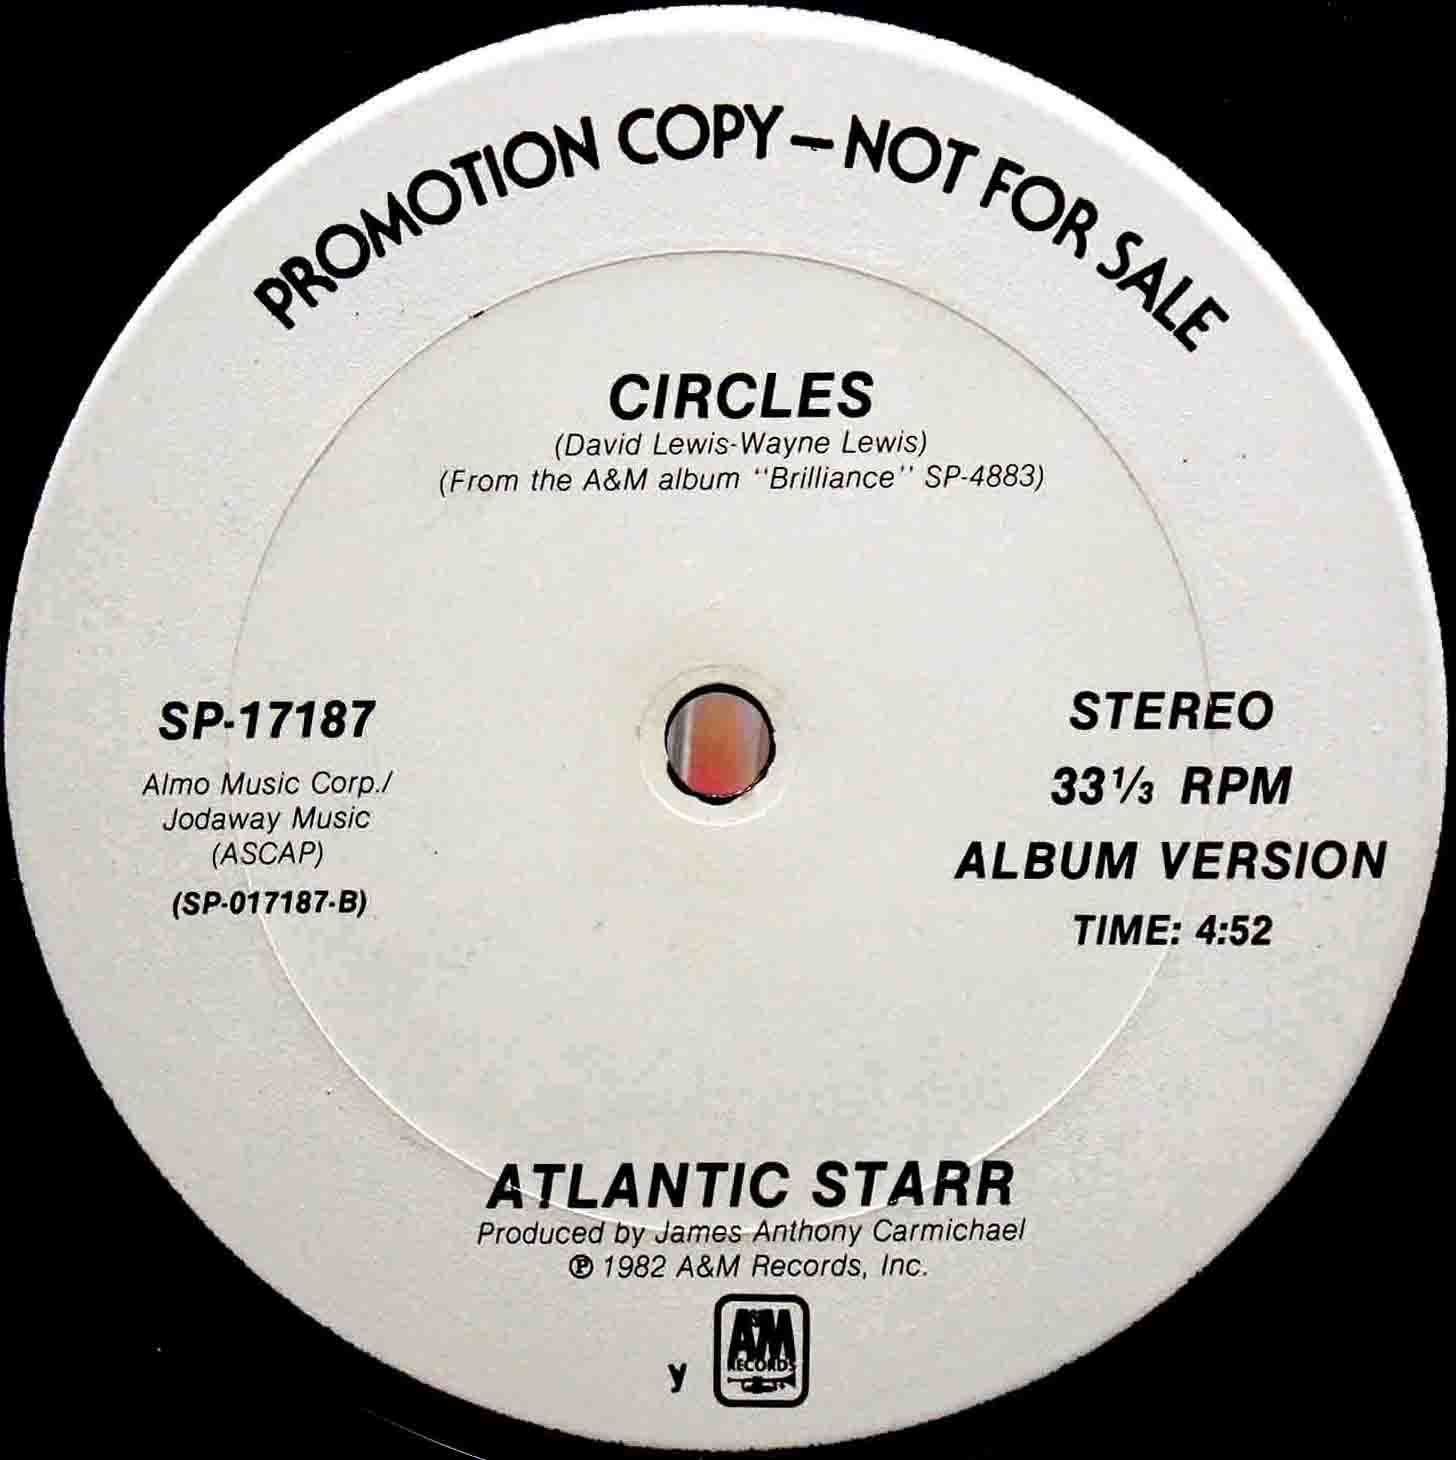 Atlantic Starr – Circles 03